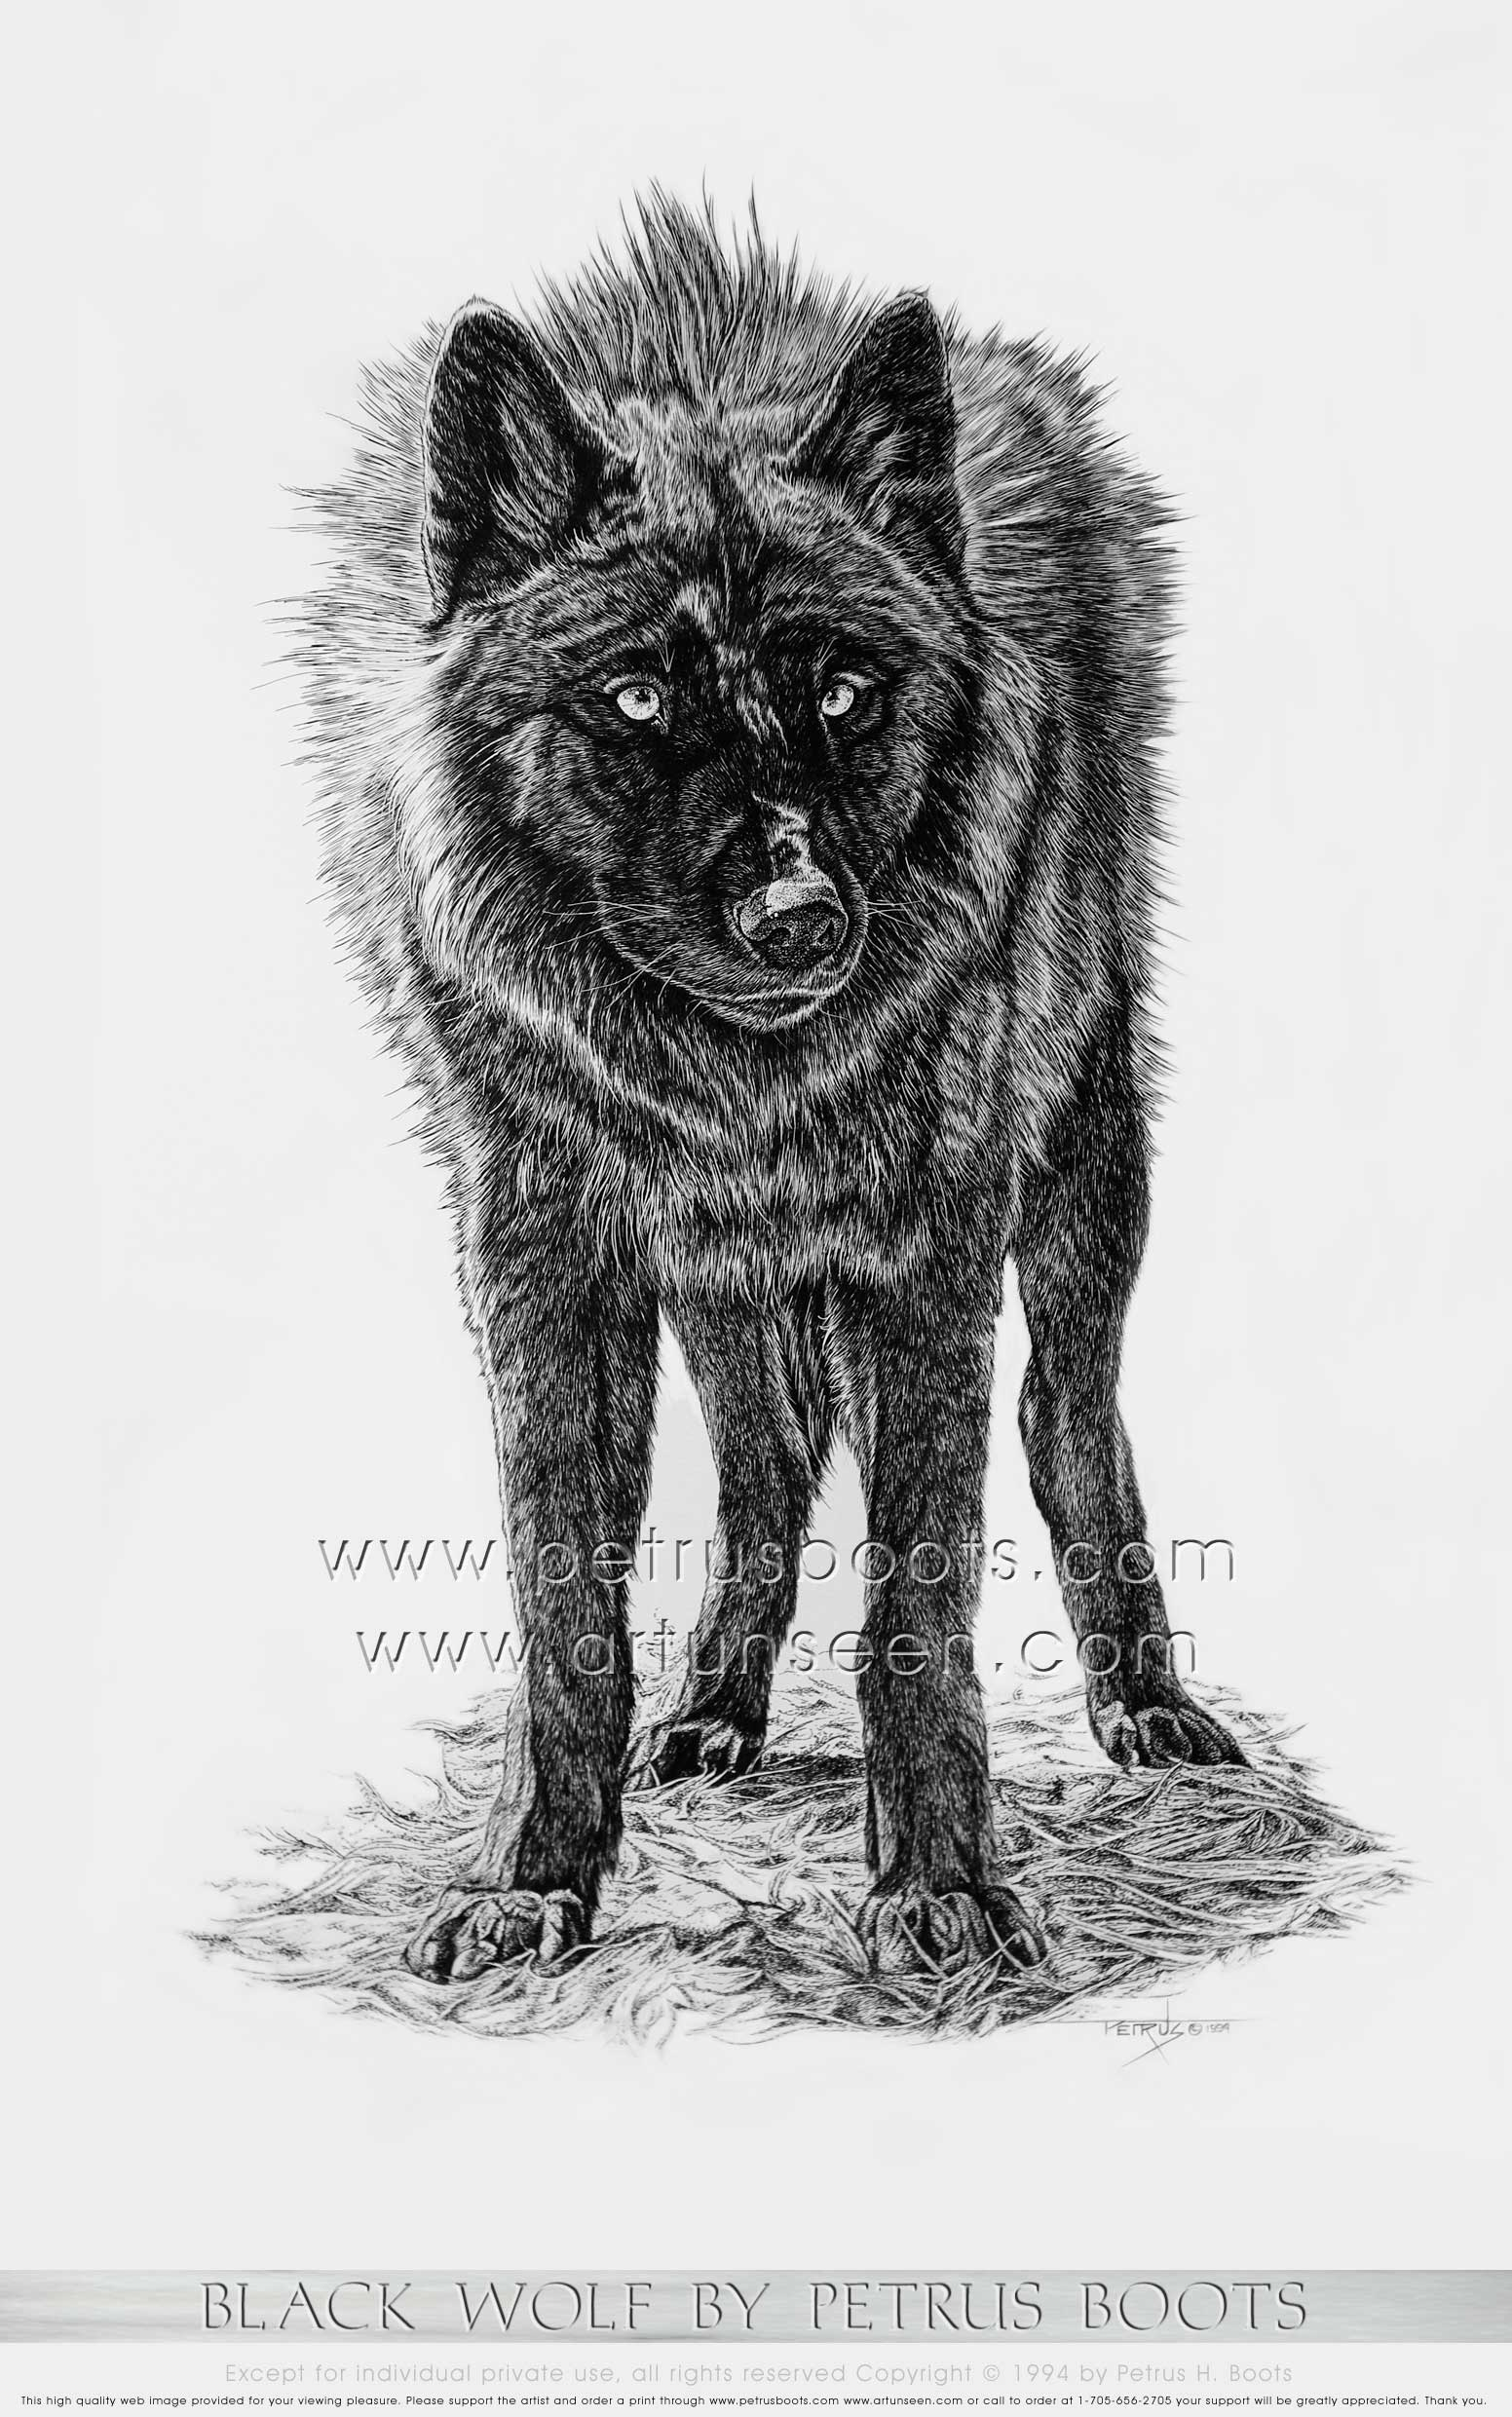 The Art of Petrus Boots ~ Black Wolf ~ Brush and India Ink